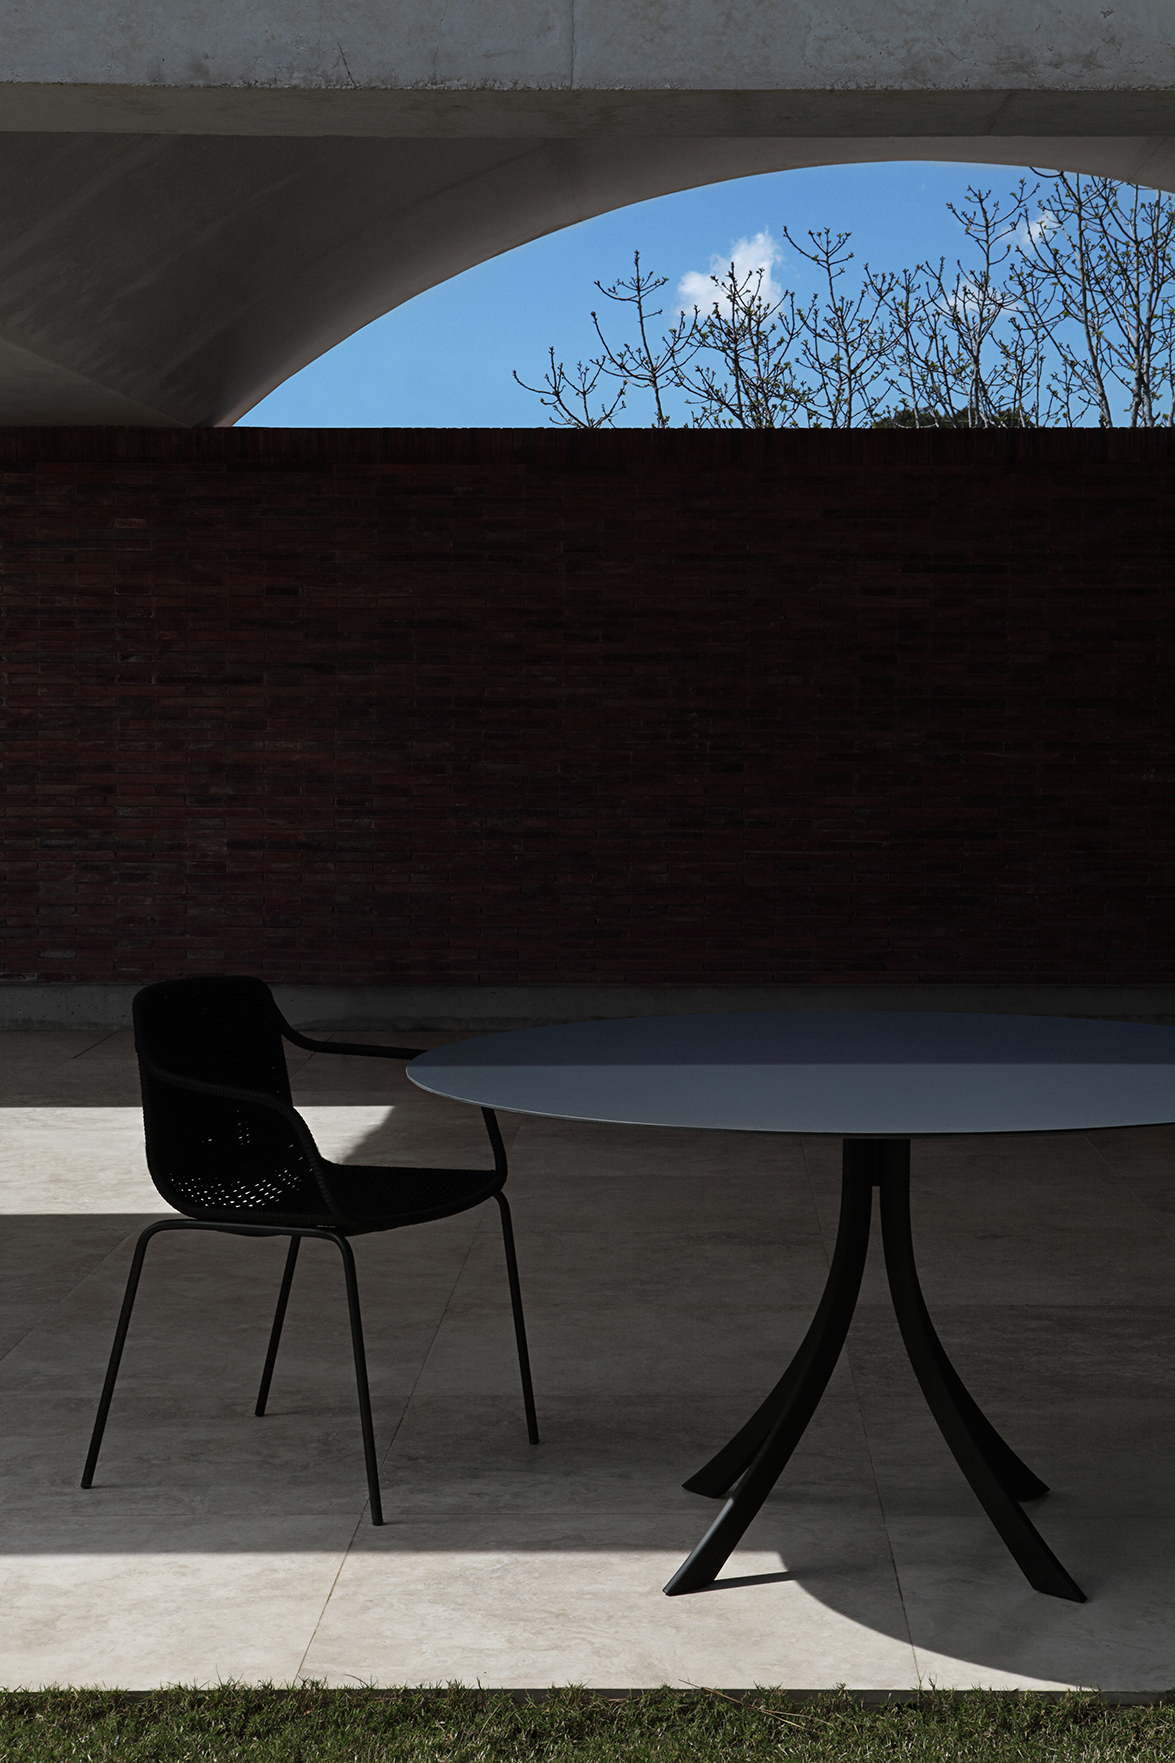 Falcata dining table by Lievore Altherr Molina 01